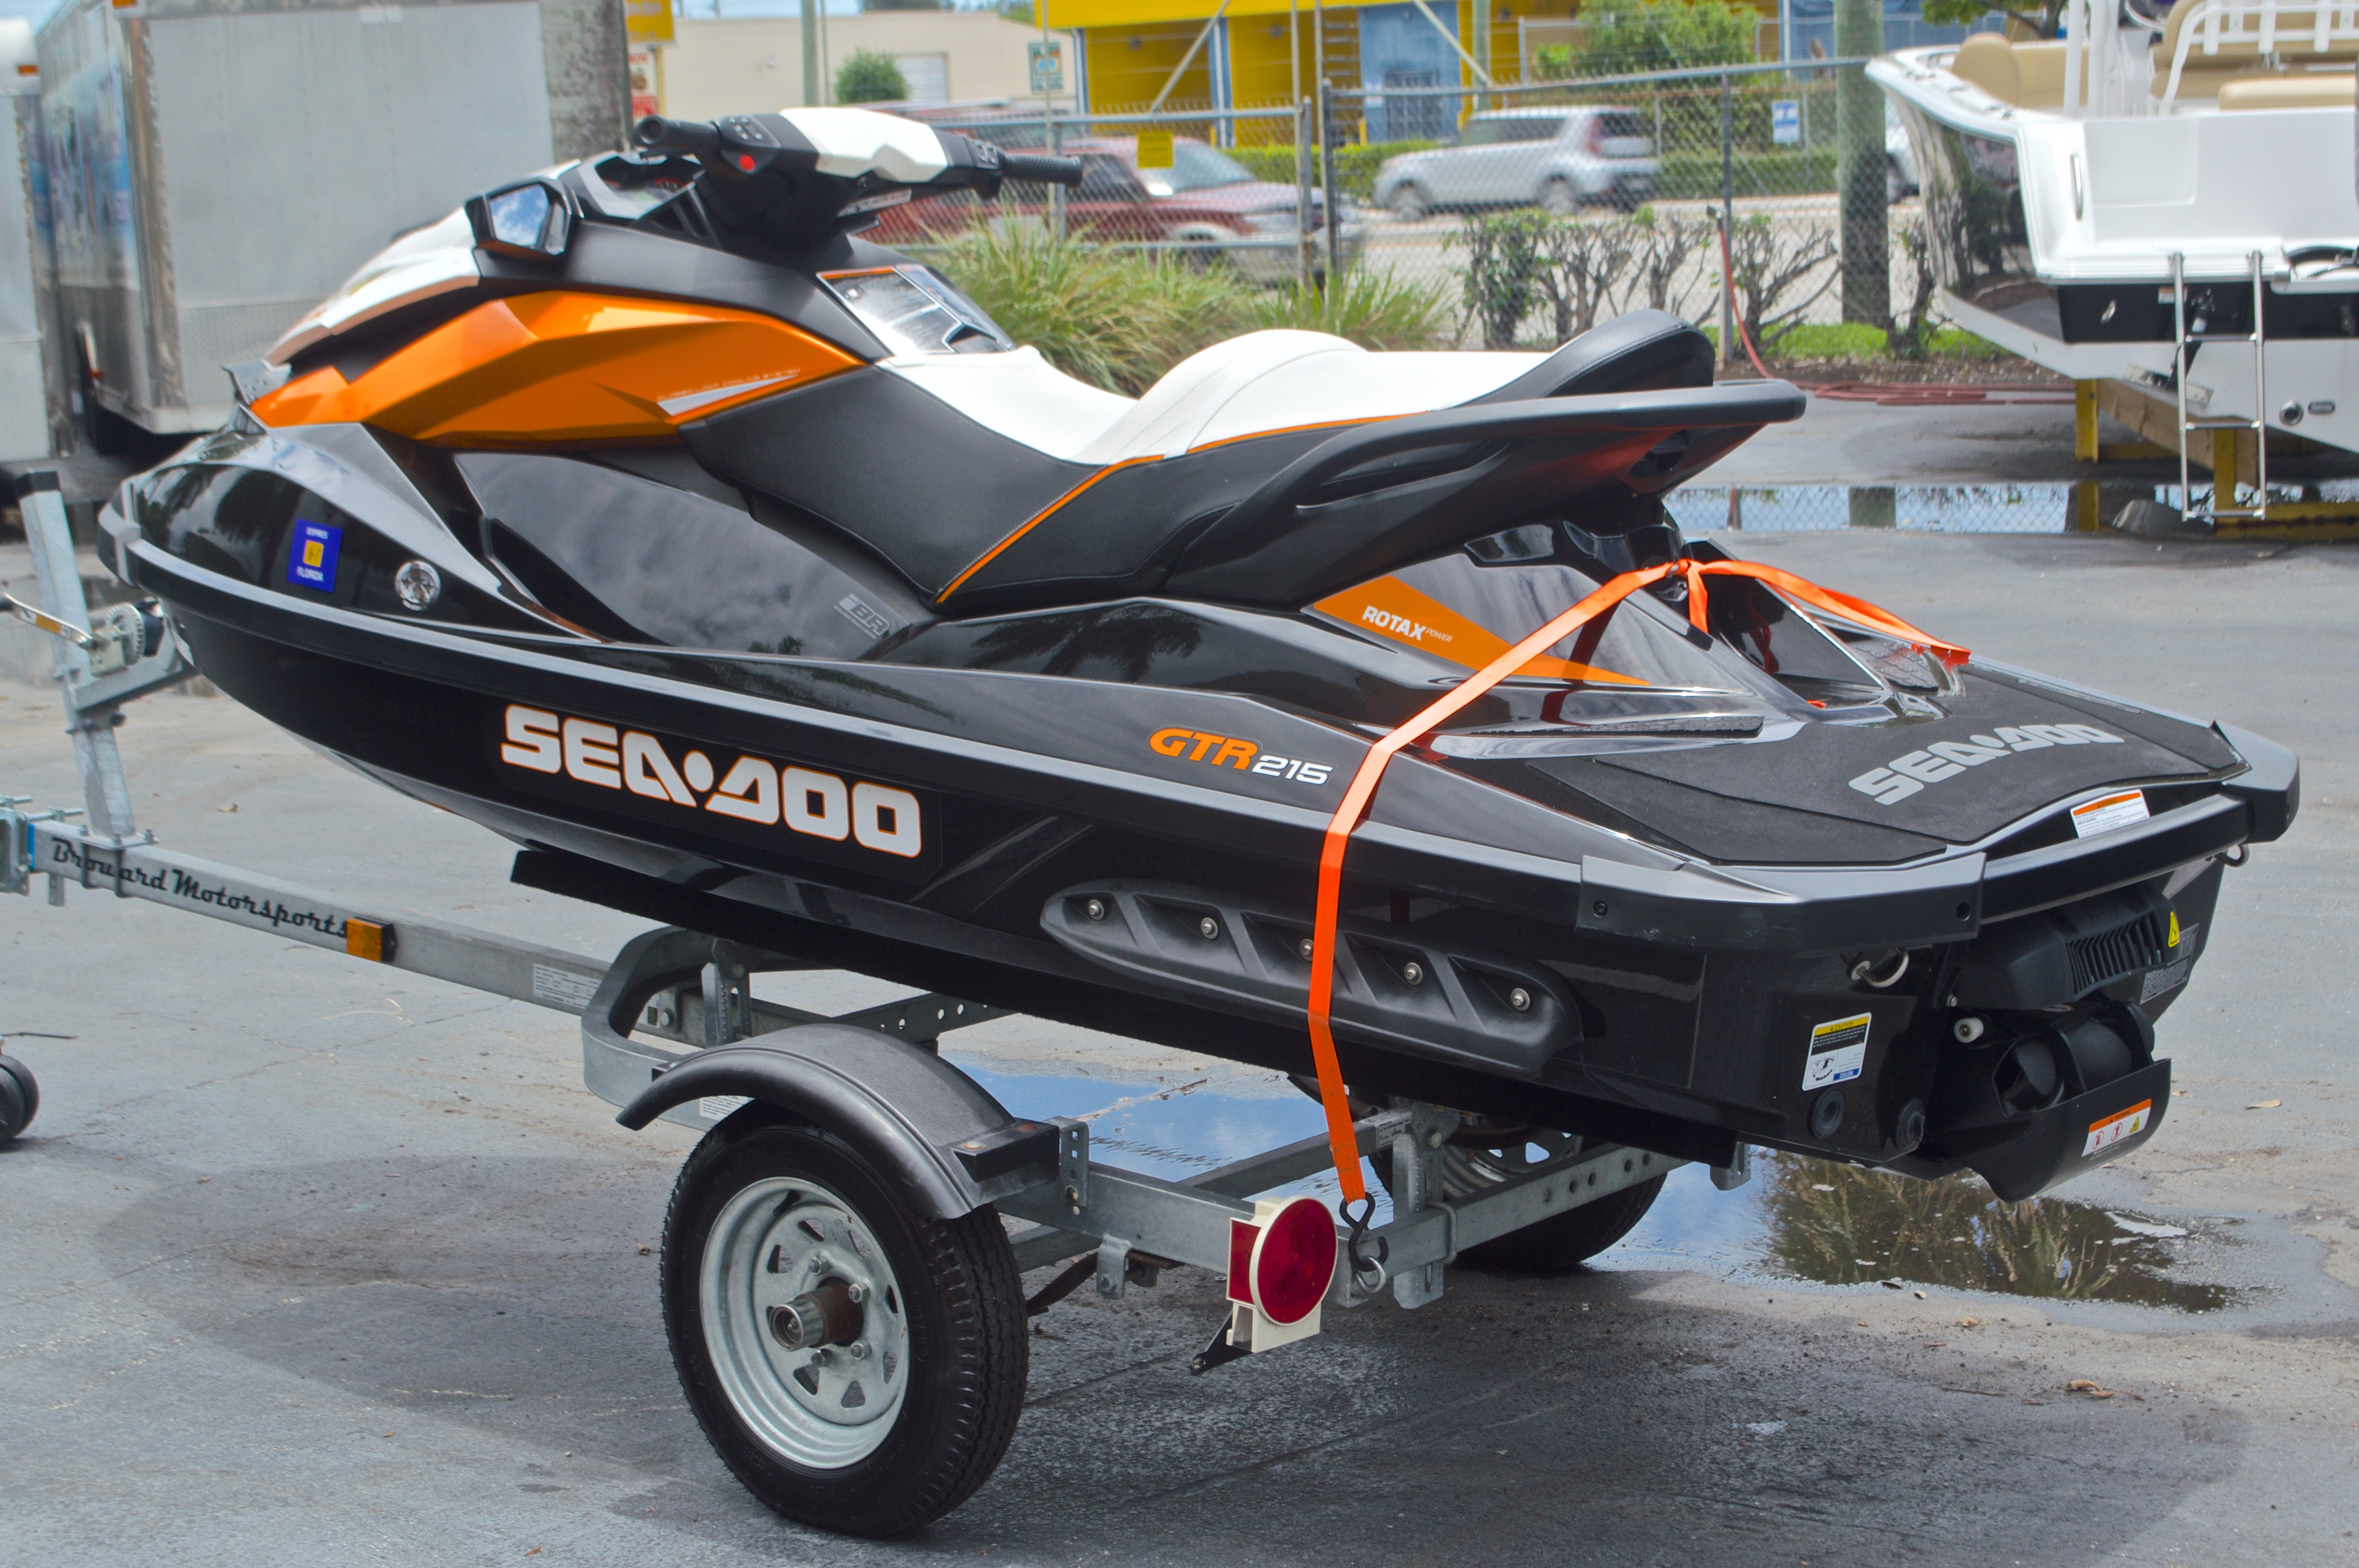 Thumbnail 5 for Used 2014 Sea-Doo GTR 215 boat for sale in West Palm Beach, FL